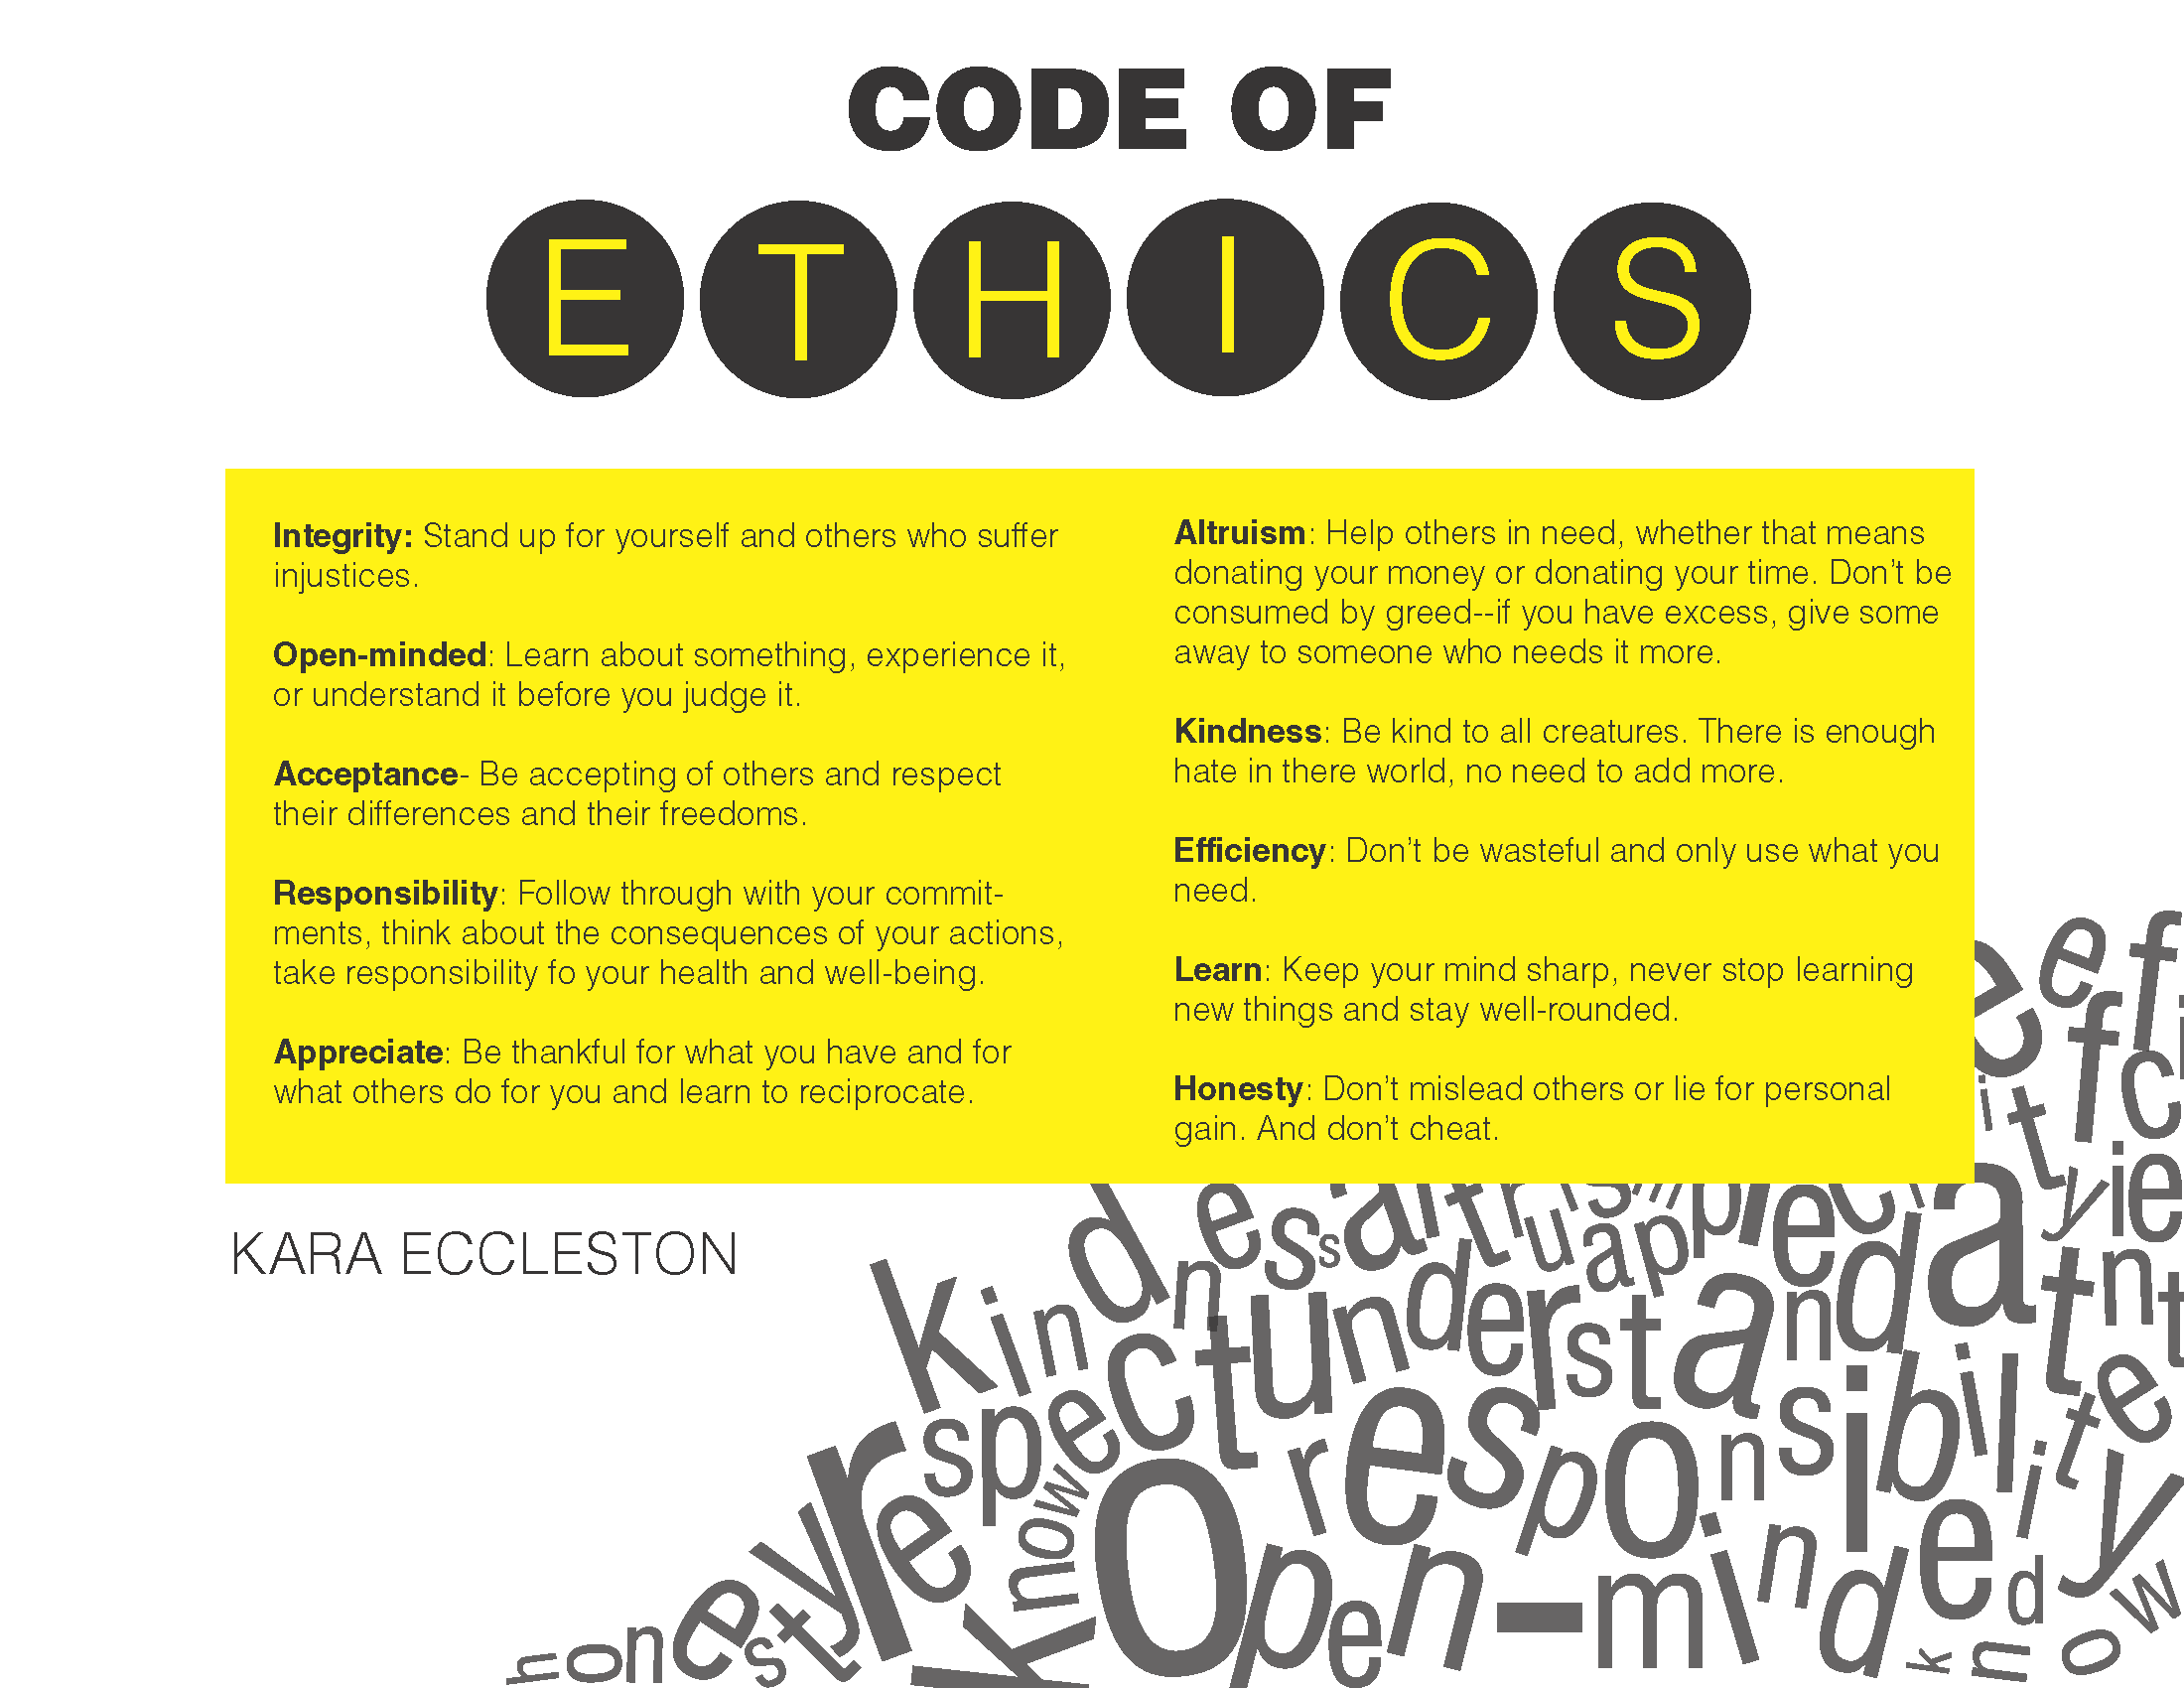 This List Of Ethics Can Be Applied To Everyone And Not